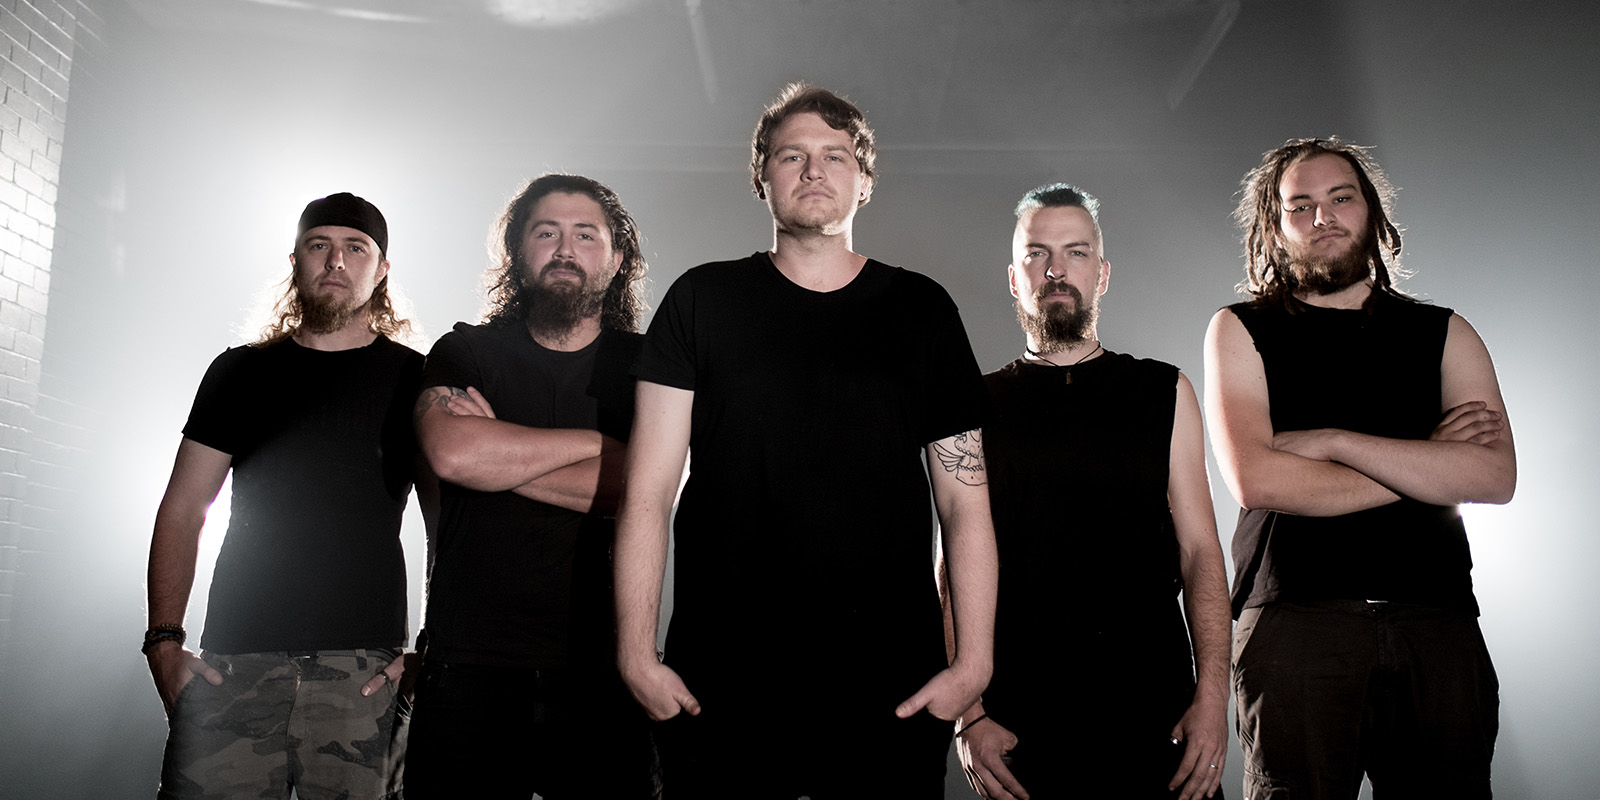 Naberus band biography, streaming music, exclusive downloads, videos, tour dates, merchandise, official links, and more metal music at Eclipse Records